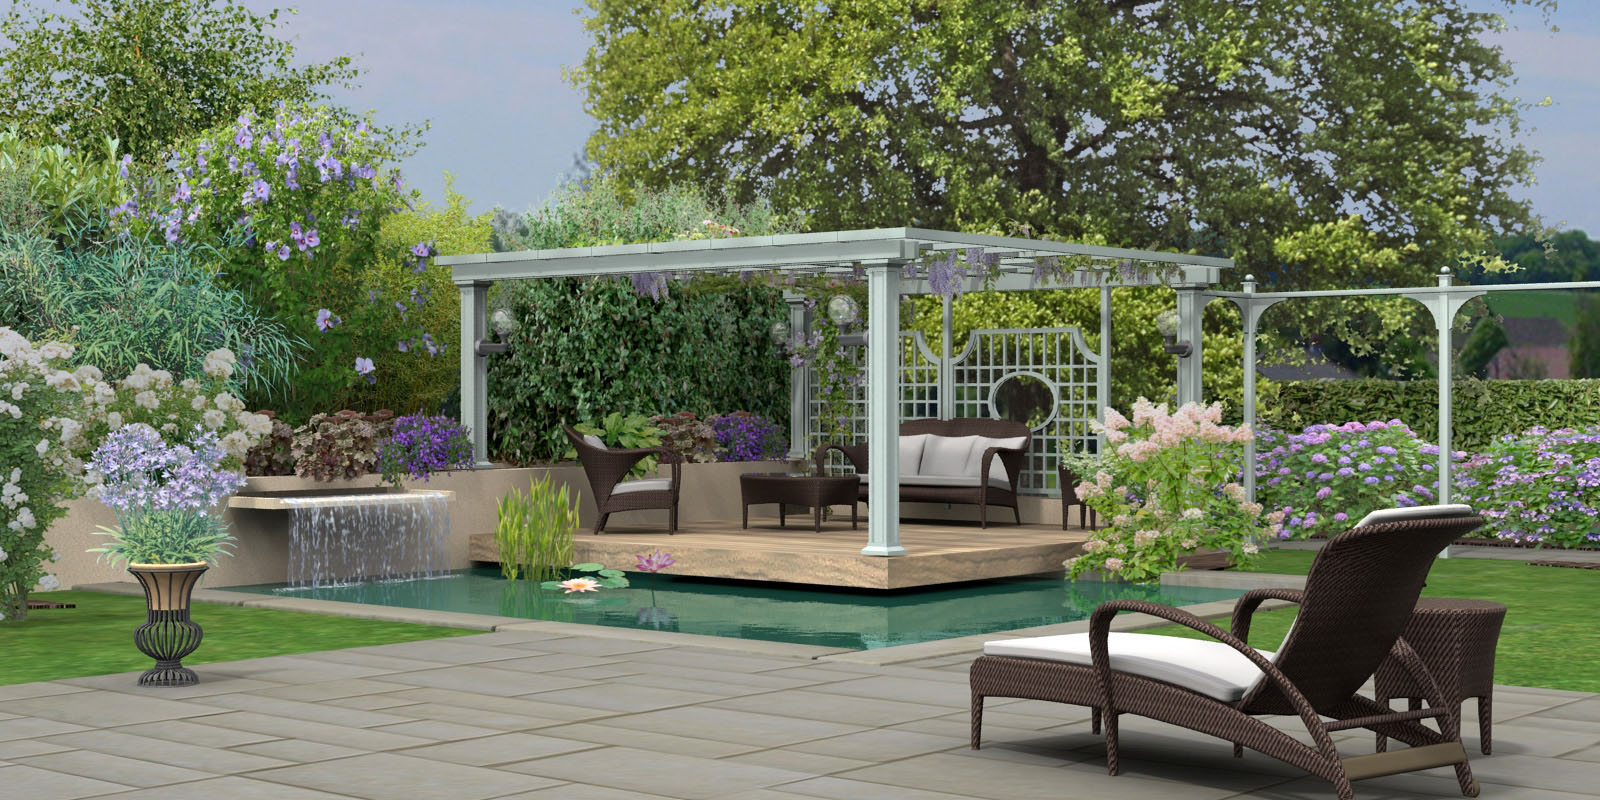 Hortus3d cr ation de plans de jardin 3d en r alit virtuelle for Dessiner son jardin paysager